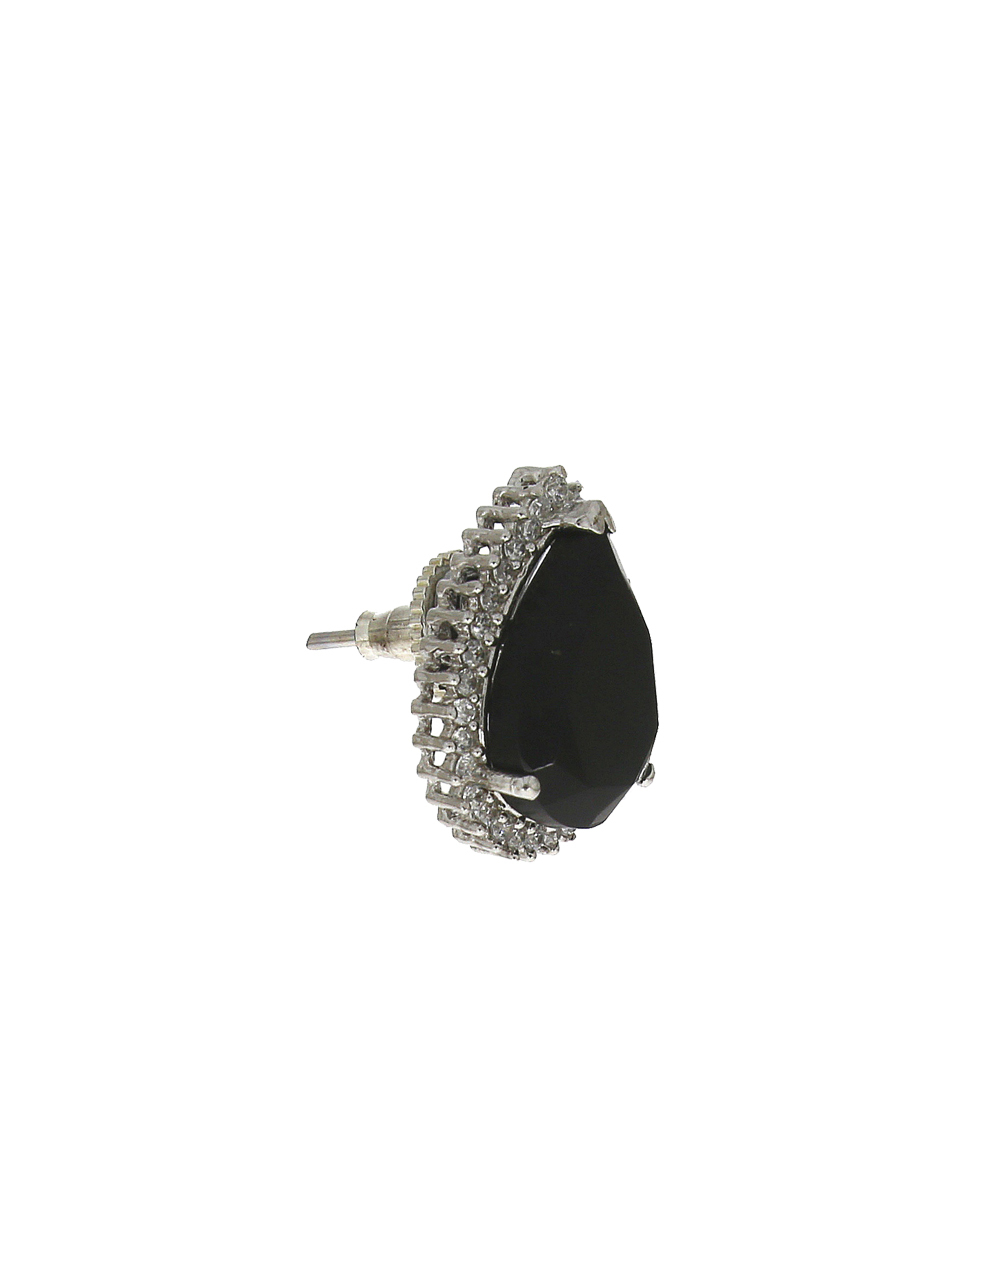 Silver-plated sparkling black stones studded pendant with earrings set